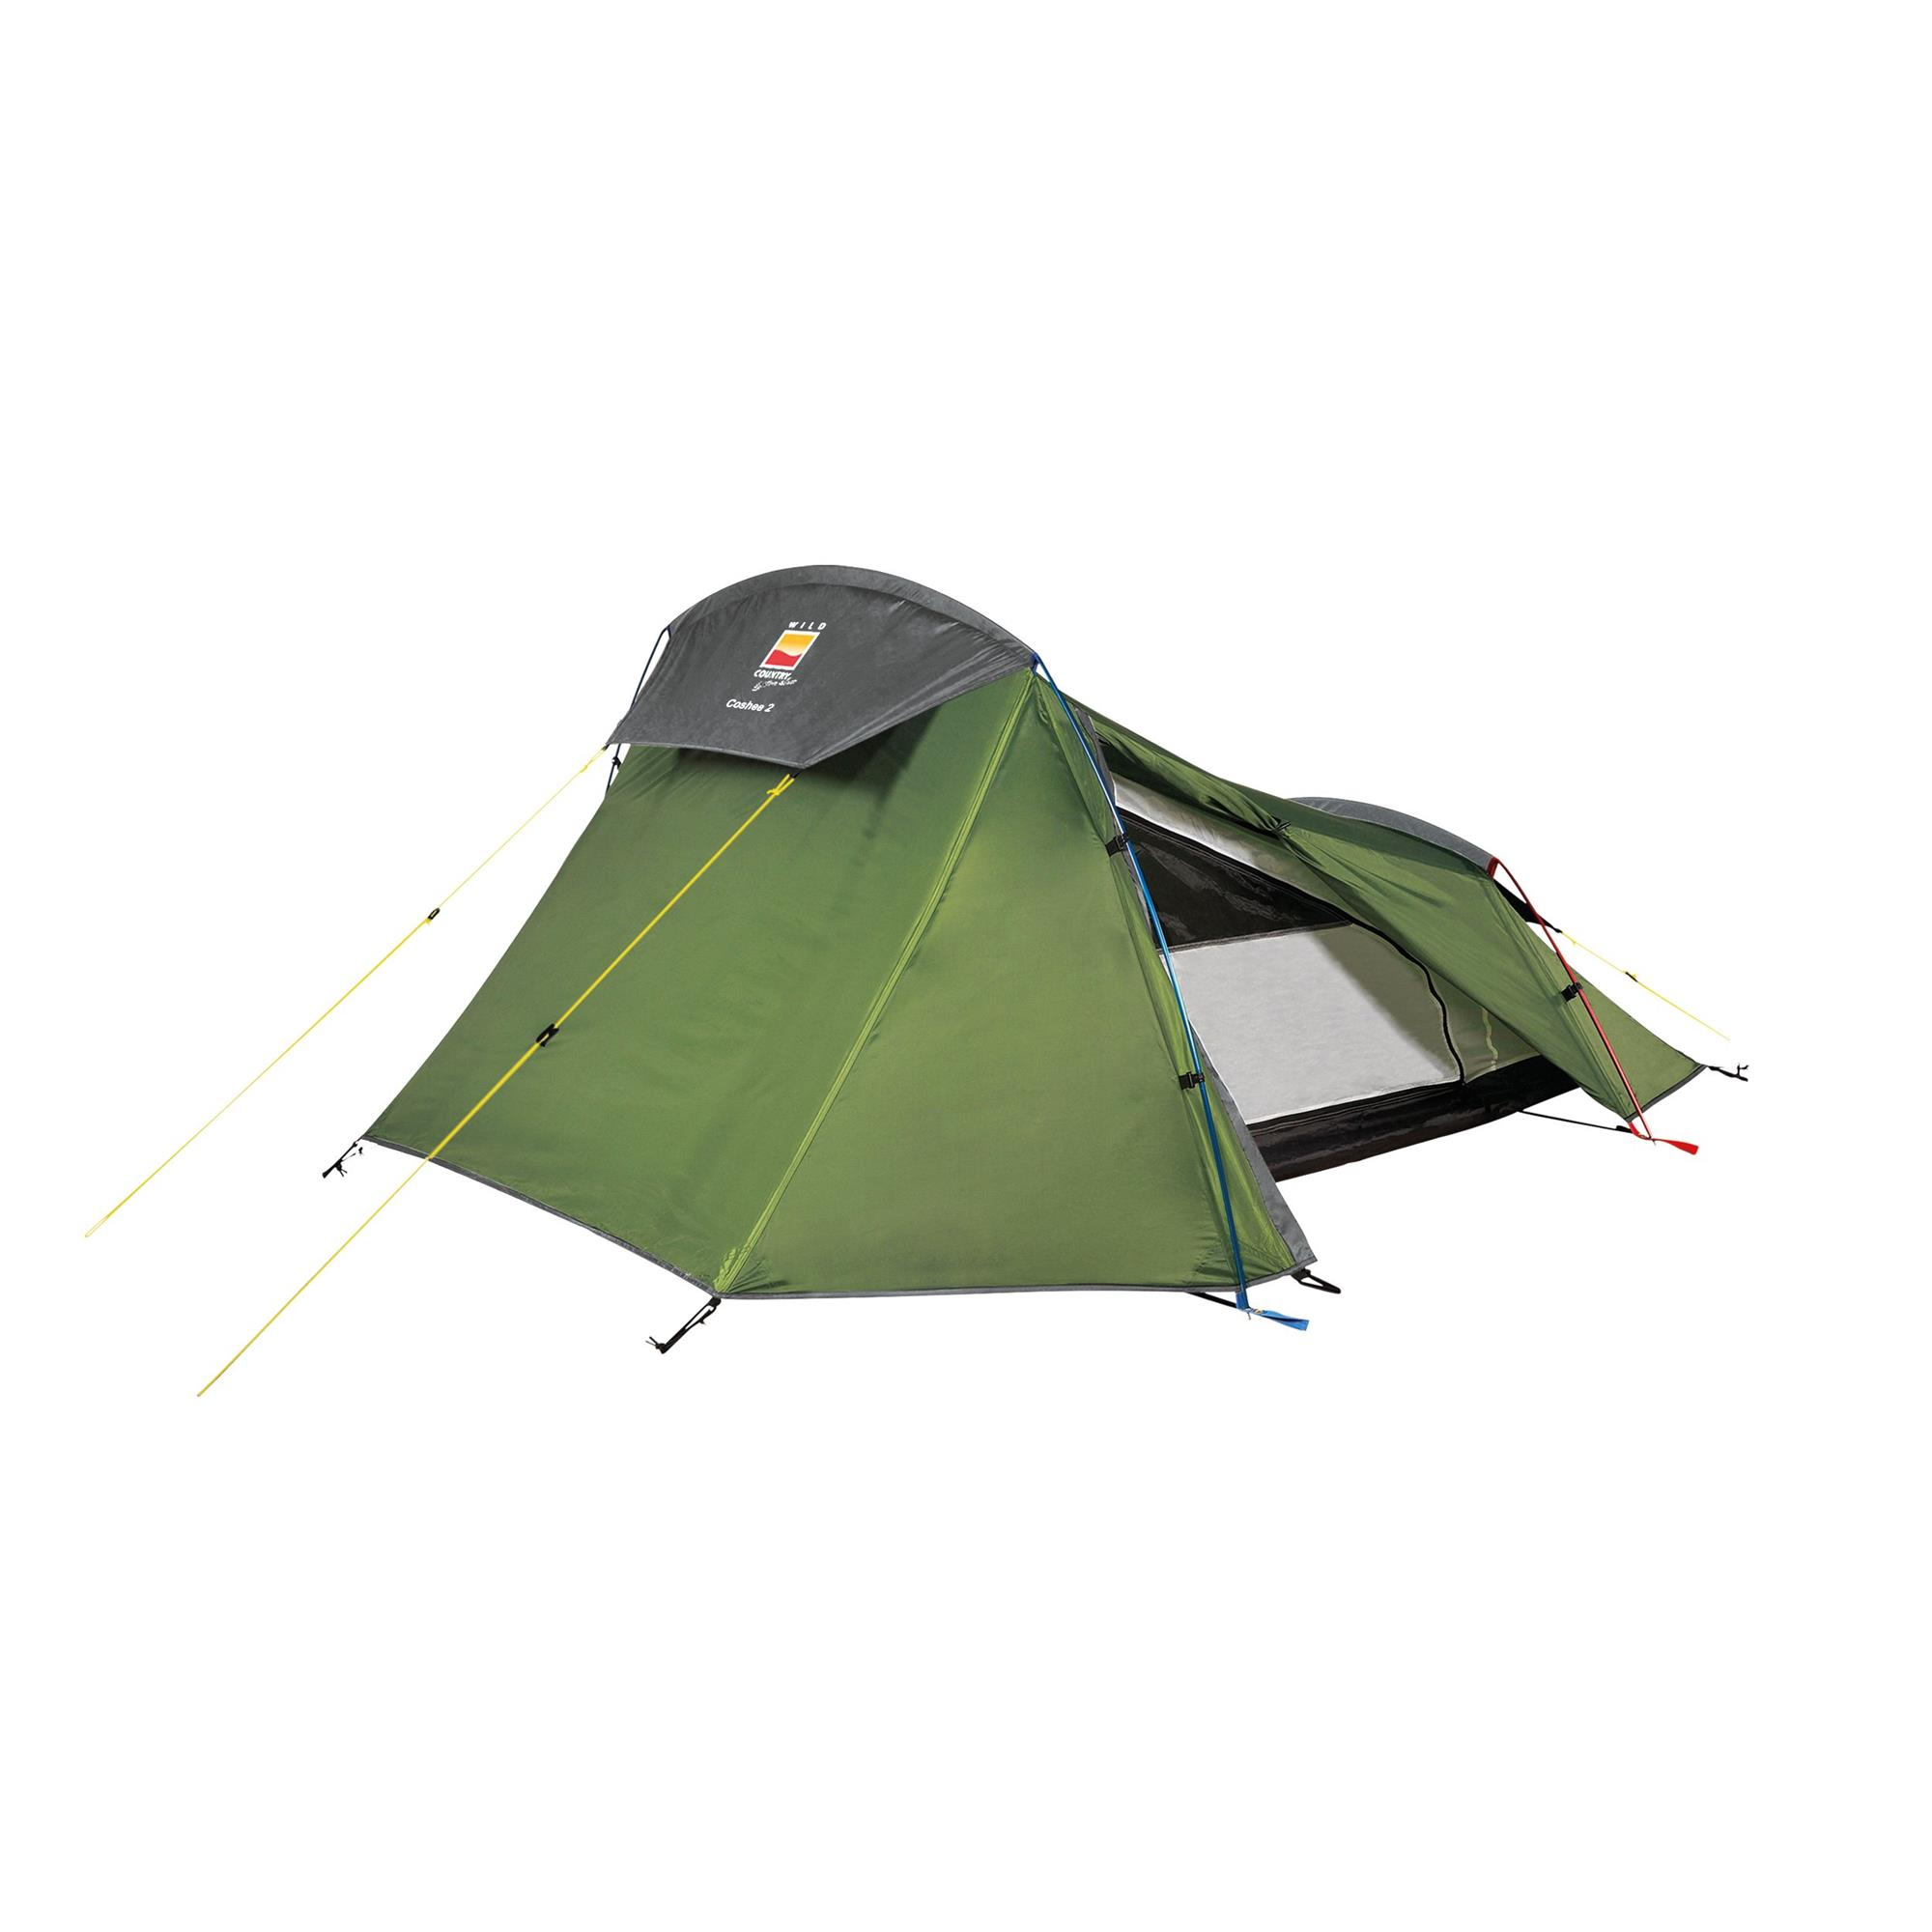 Wild Country Coshee 2 V2 Tent - 2 Person Tent - Summits